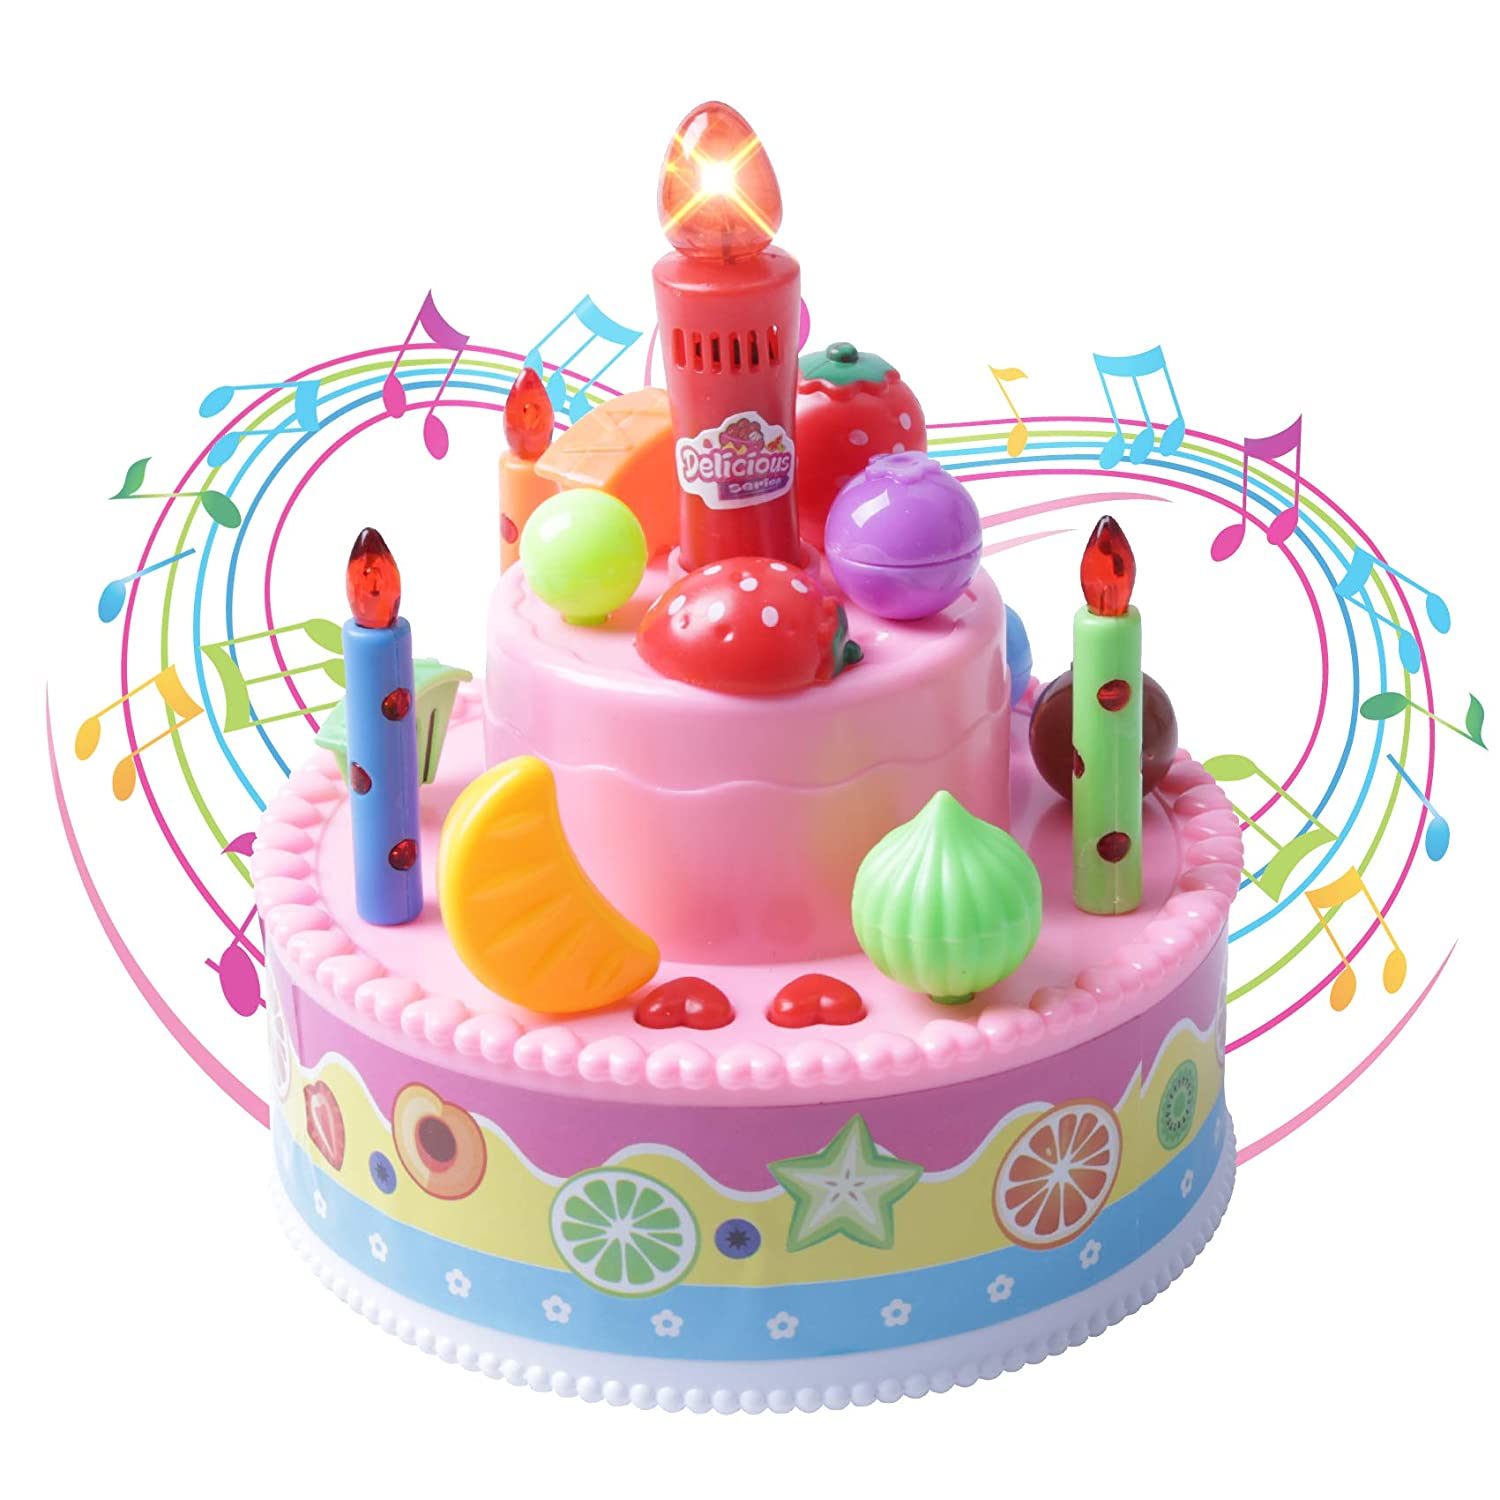 Miraculous Record And Playback 4 6 Musical Birthday Cake Toy With Light Up Birthday Cards Printable Inklcafe Filternl